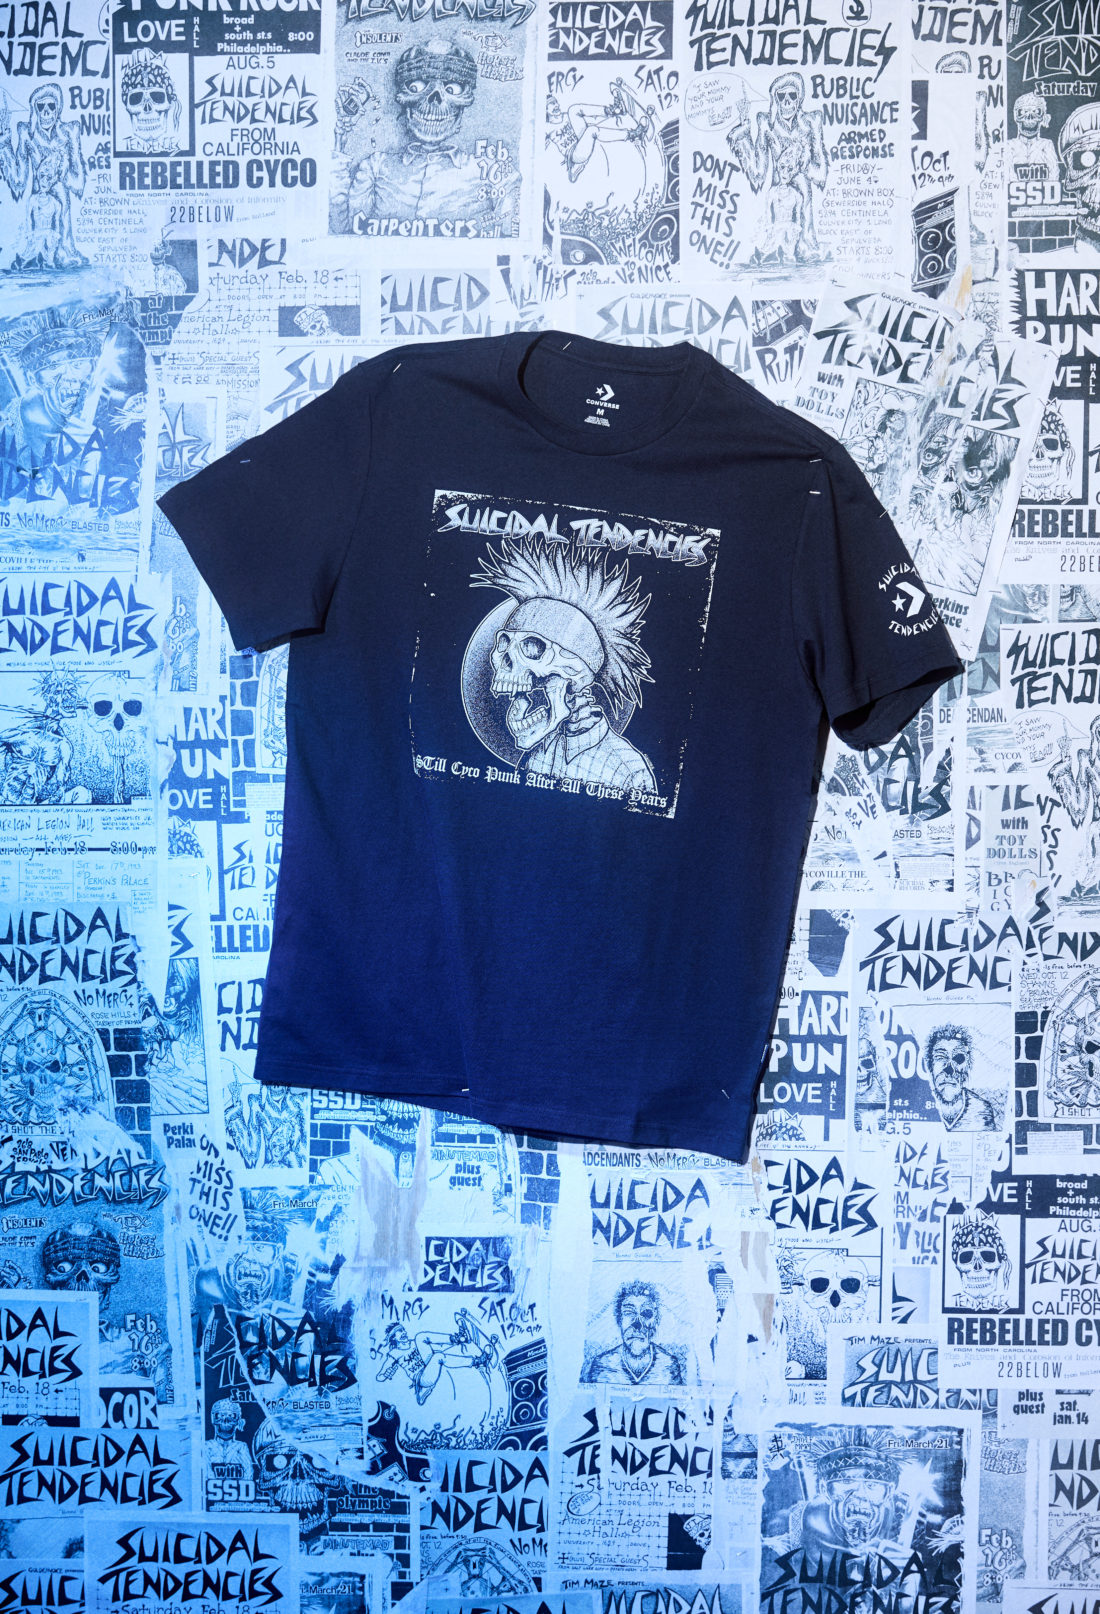 Converse x Suicidal Tendencies Capsule Collection OVERKILL